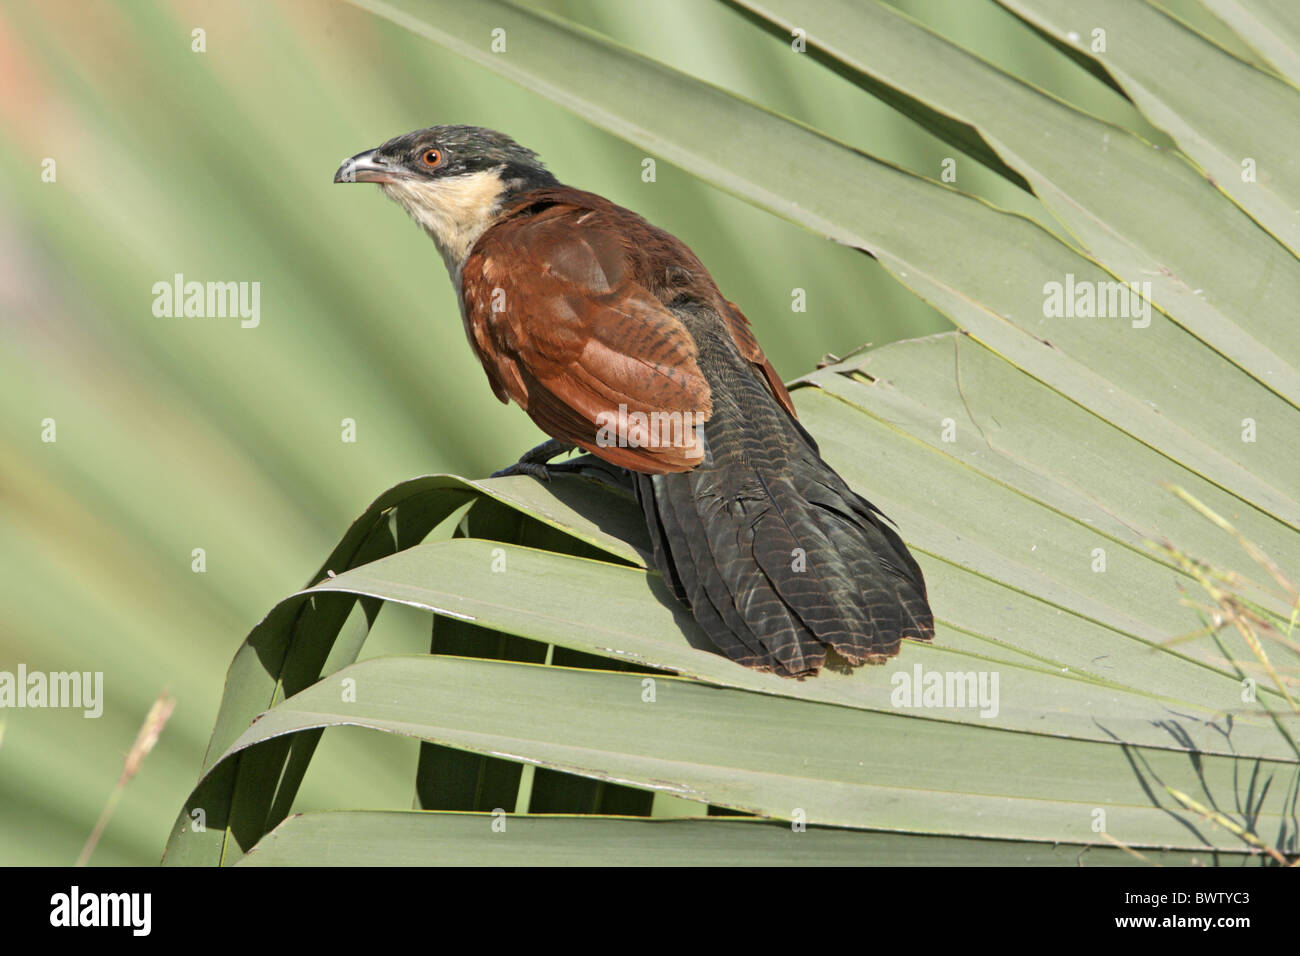 Senegal Coucal (Centropus senegalensis) adult, perched on palm frond, Gambia, december - Stock Image